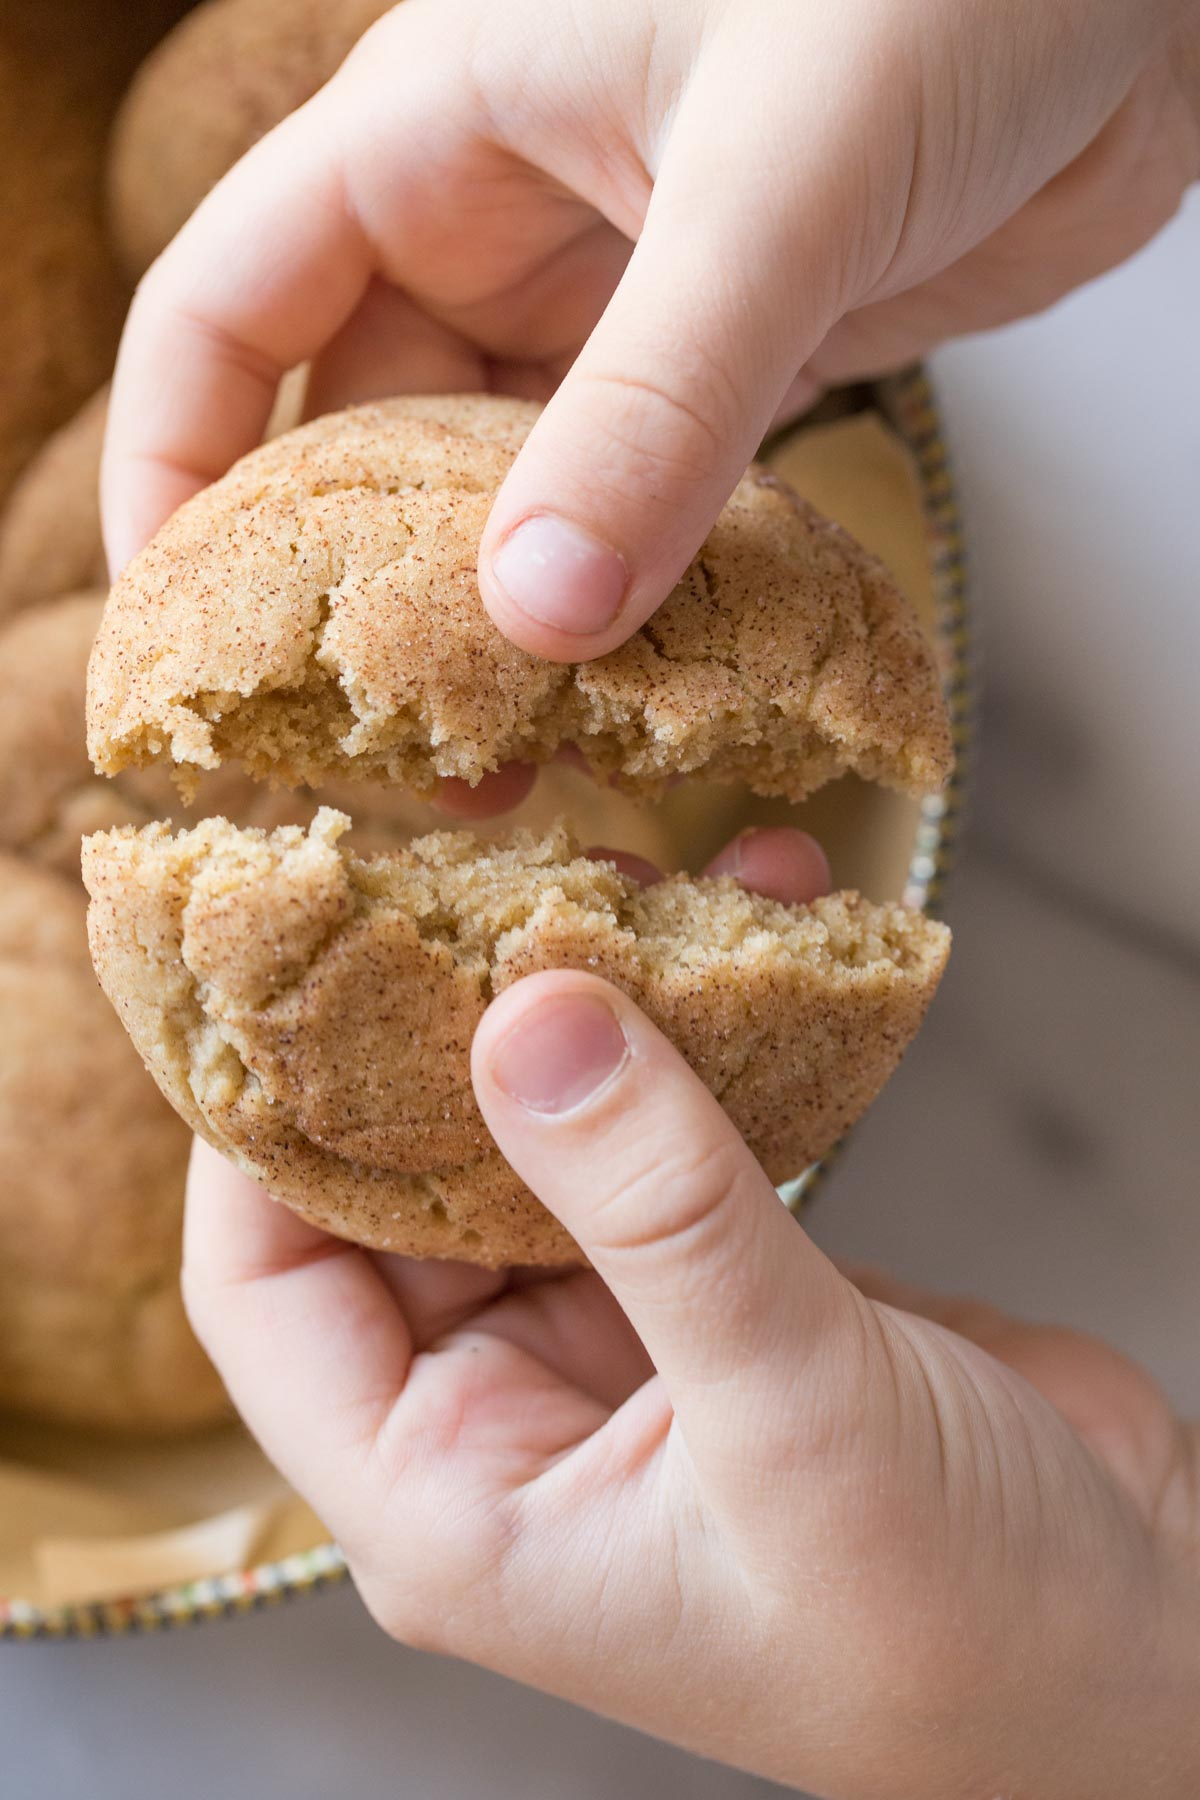 A child's hand breaking open a Super Soft Snickerdoodle.